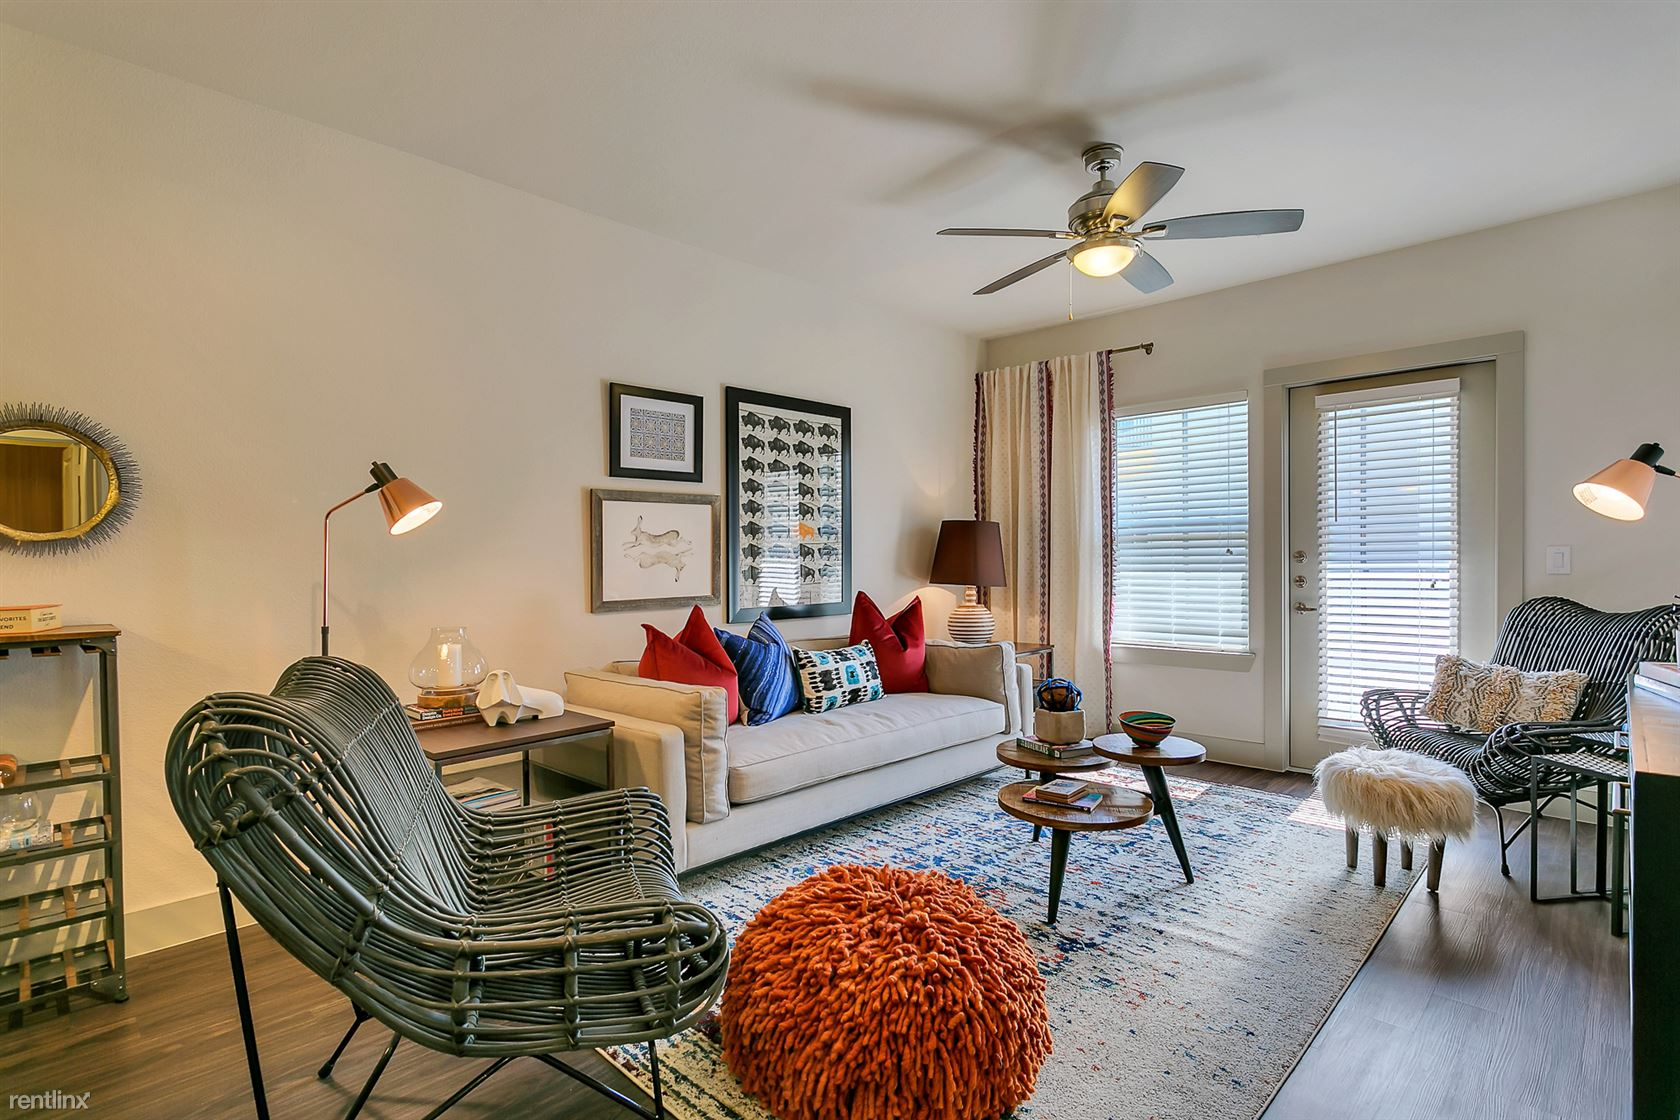 Fort Worth Ave and Sylvan Ave, Dallas, TX - $885